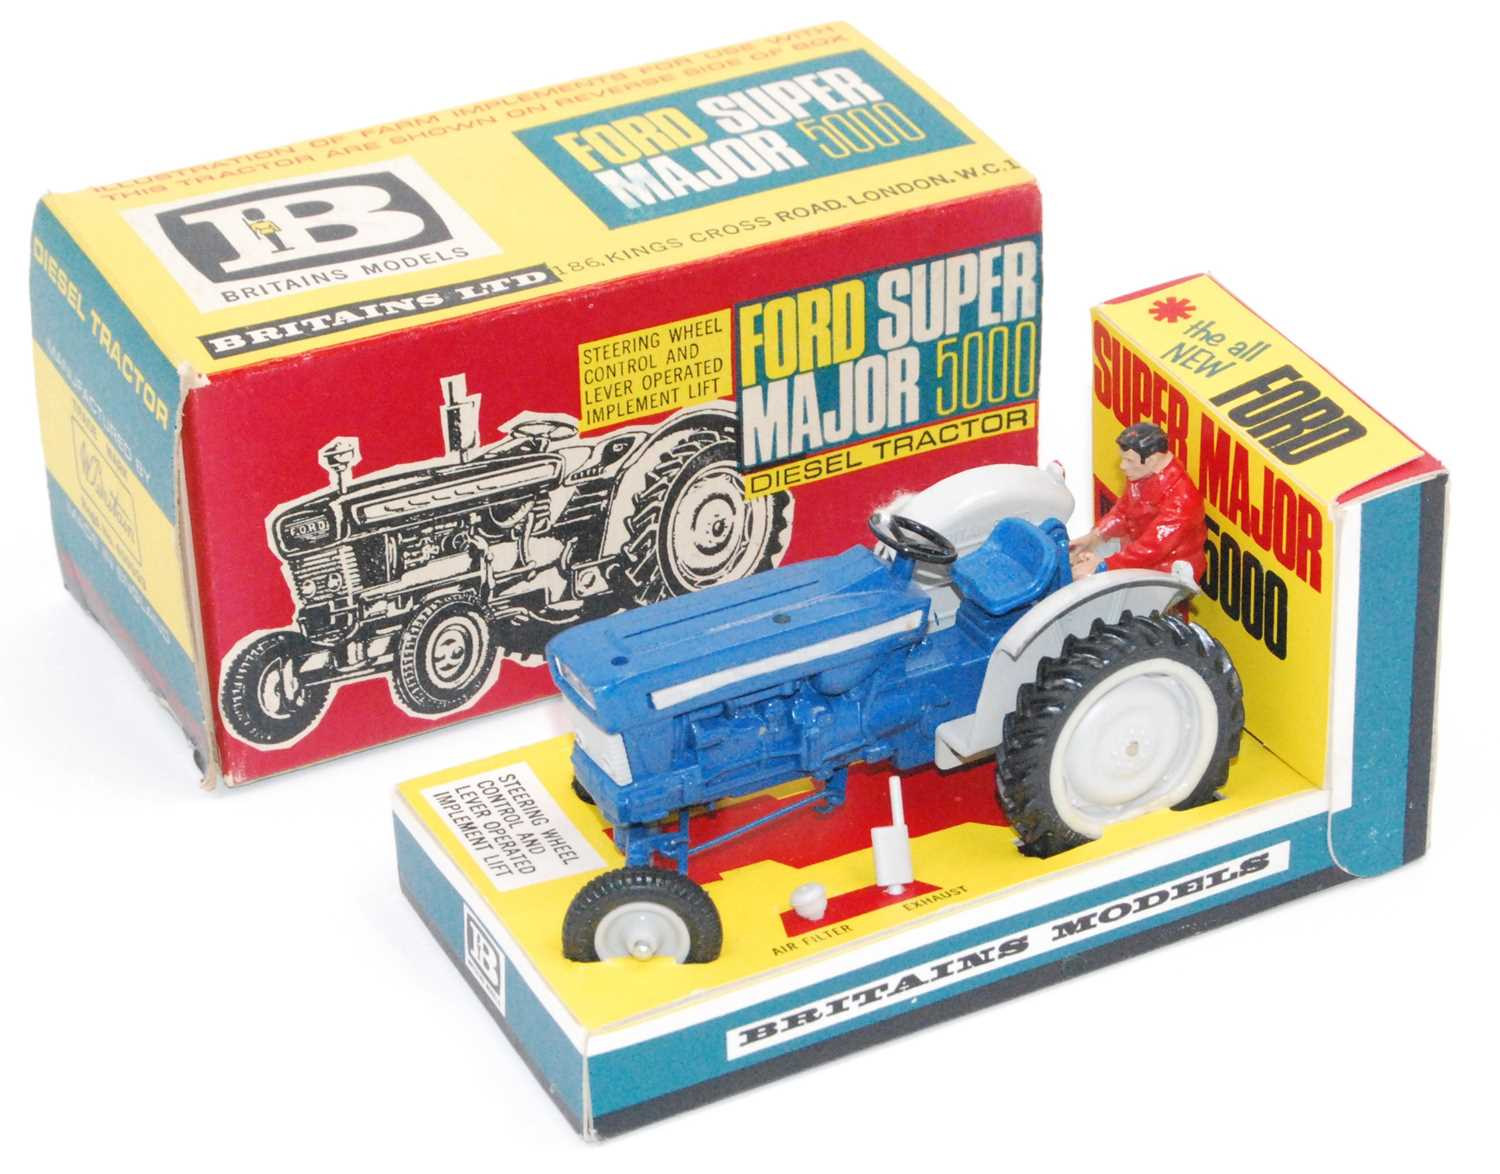 Britains 9527 Ford Super Major 5000 Diesel tractor in blue with figure complete with air filter